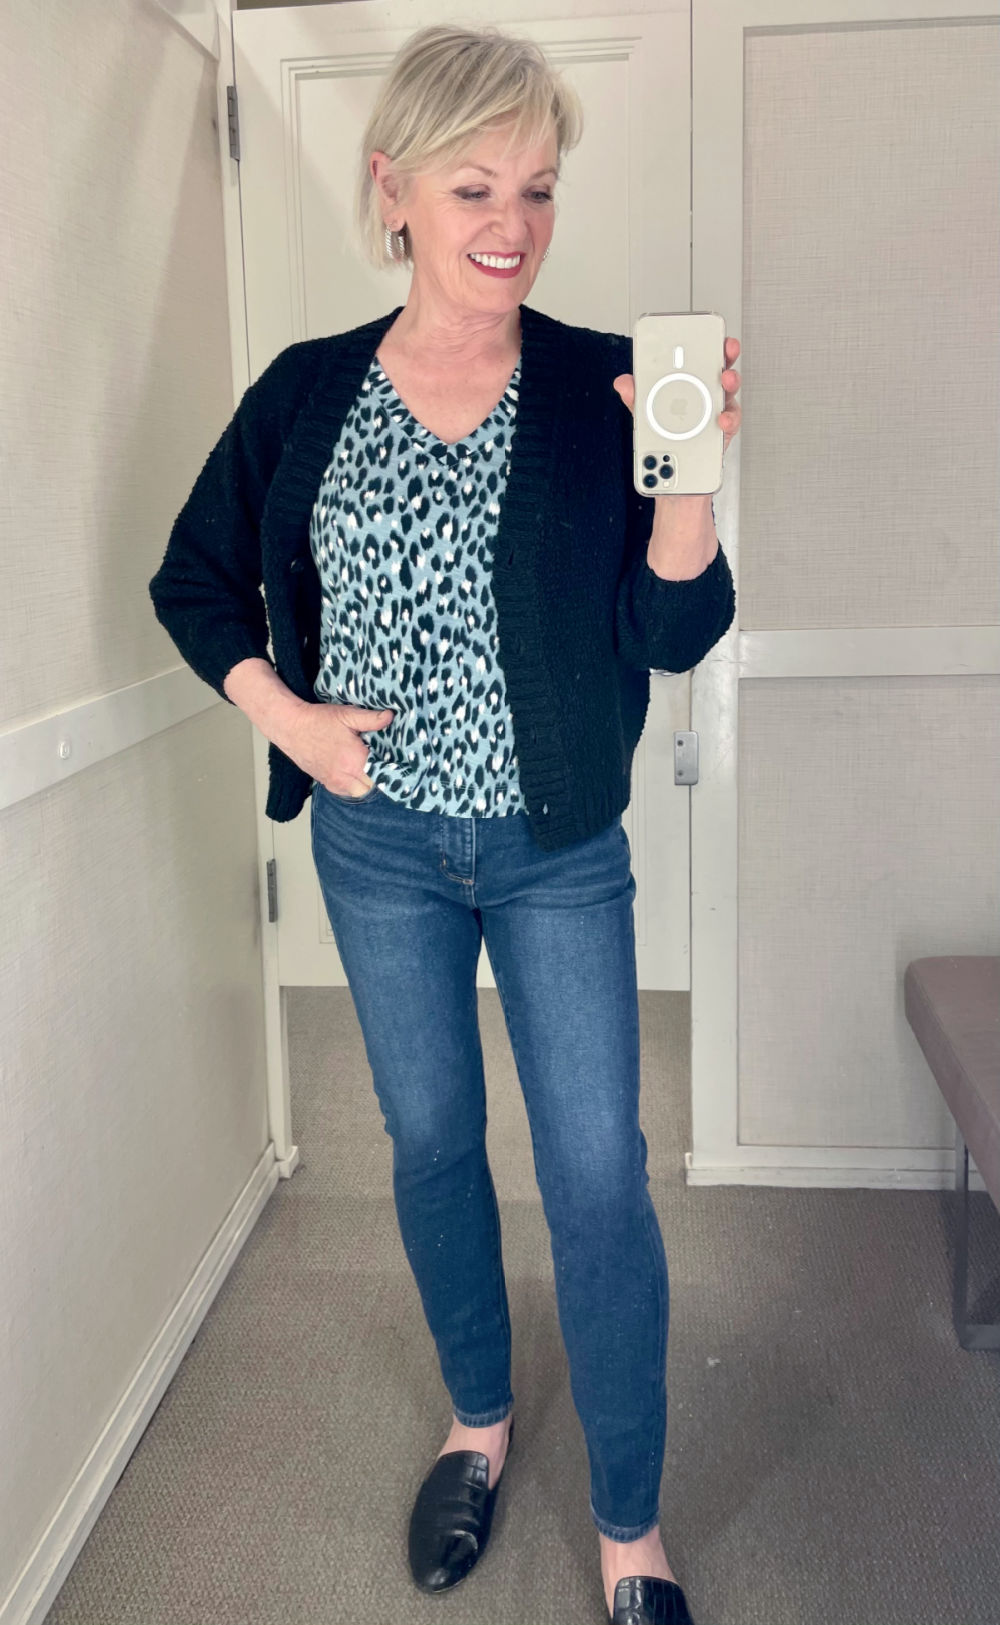 over 50 blogger jennifer connolly sharing spring fashion from loft with skinny jeans